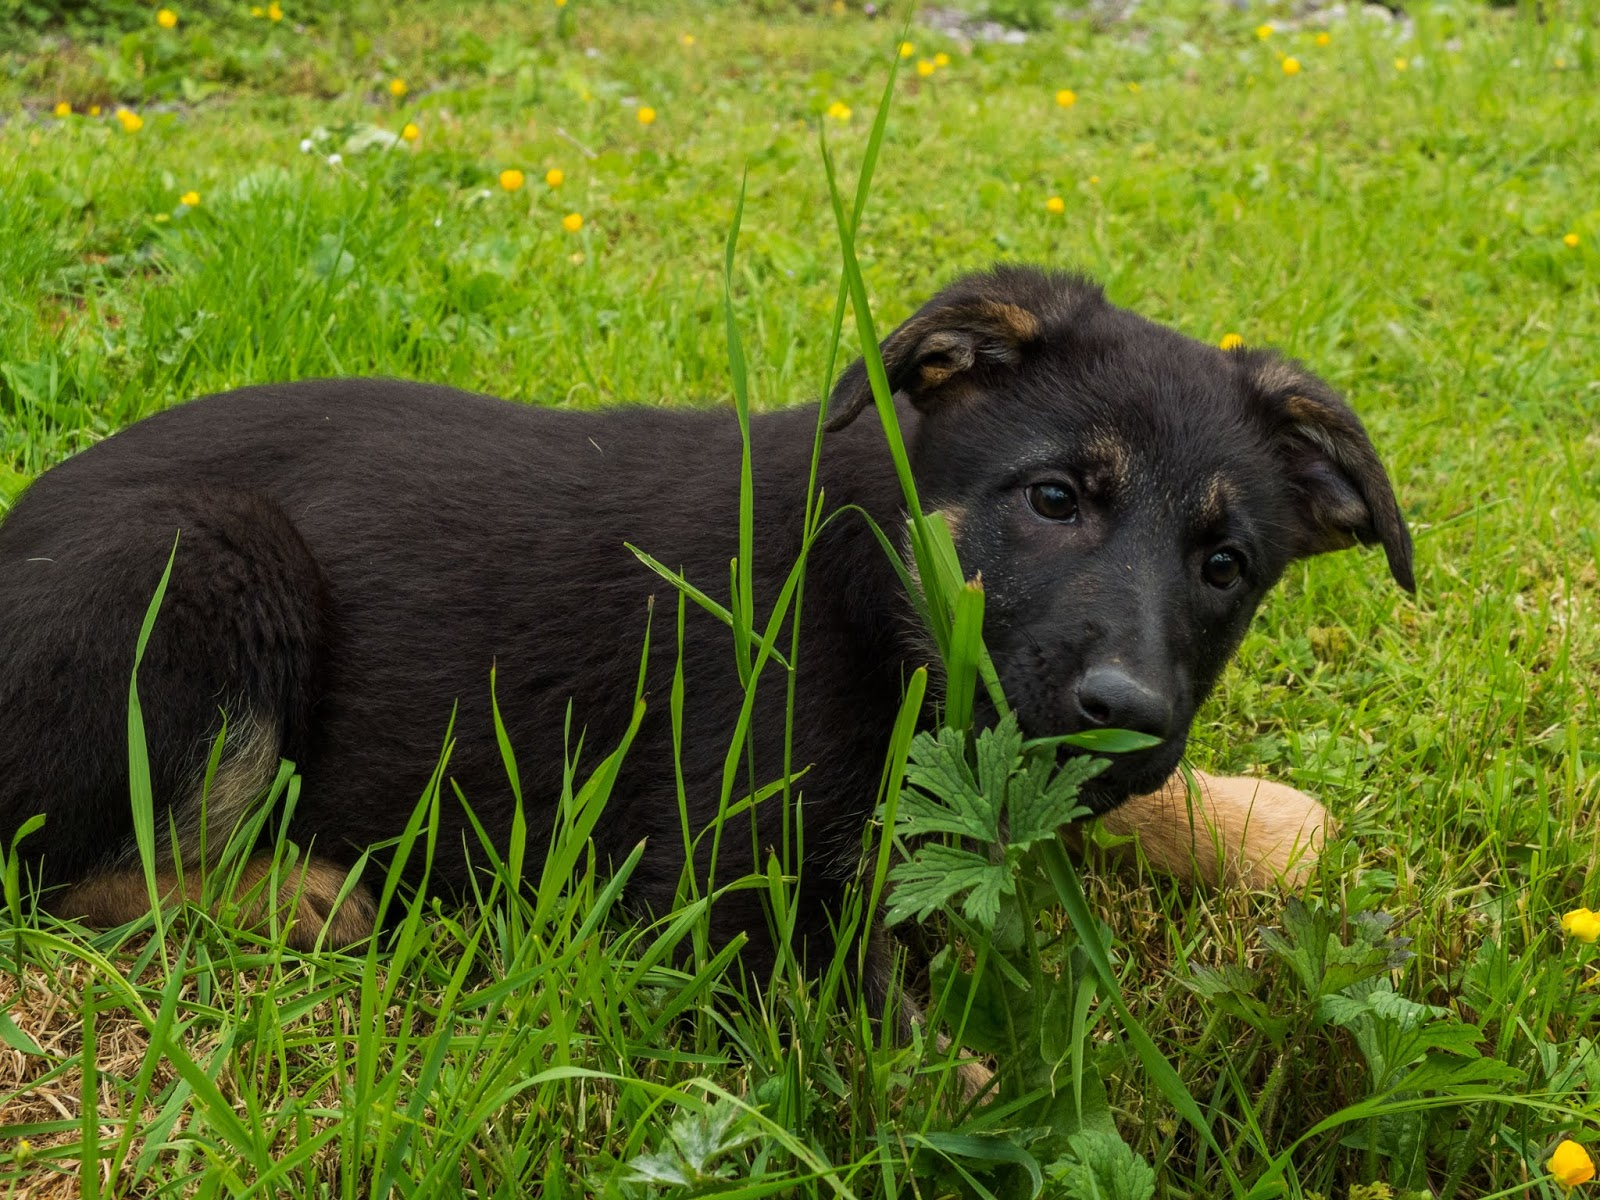 A German Shepherd puppy lying in the grass and sniffing grass blades.